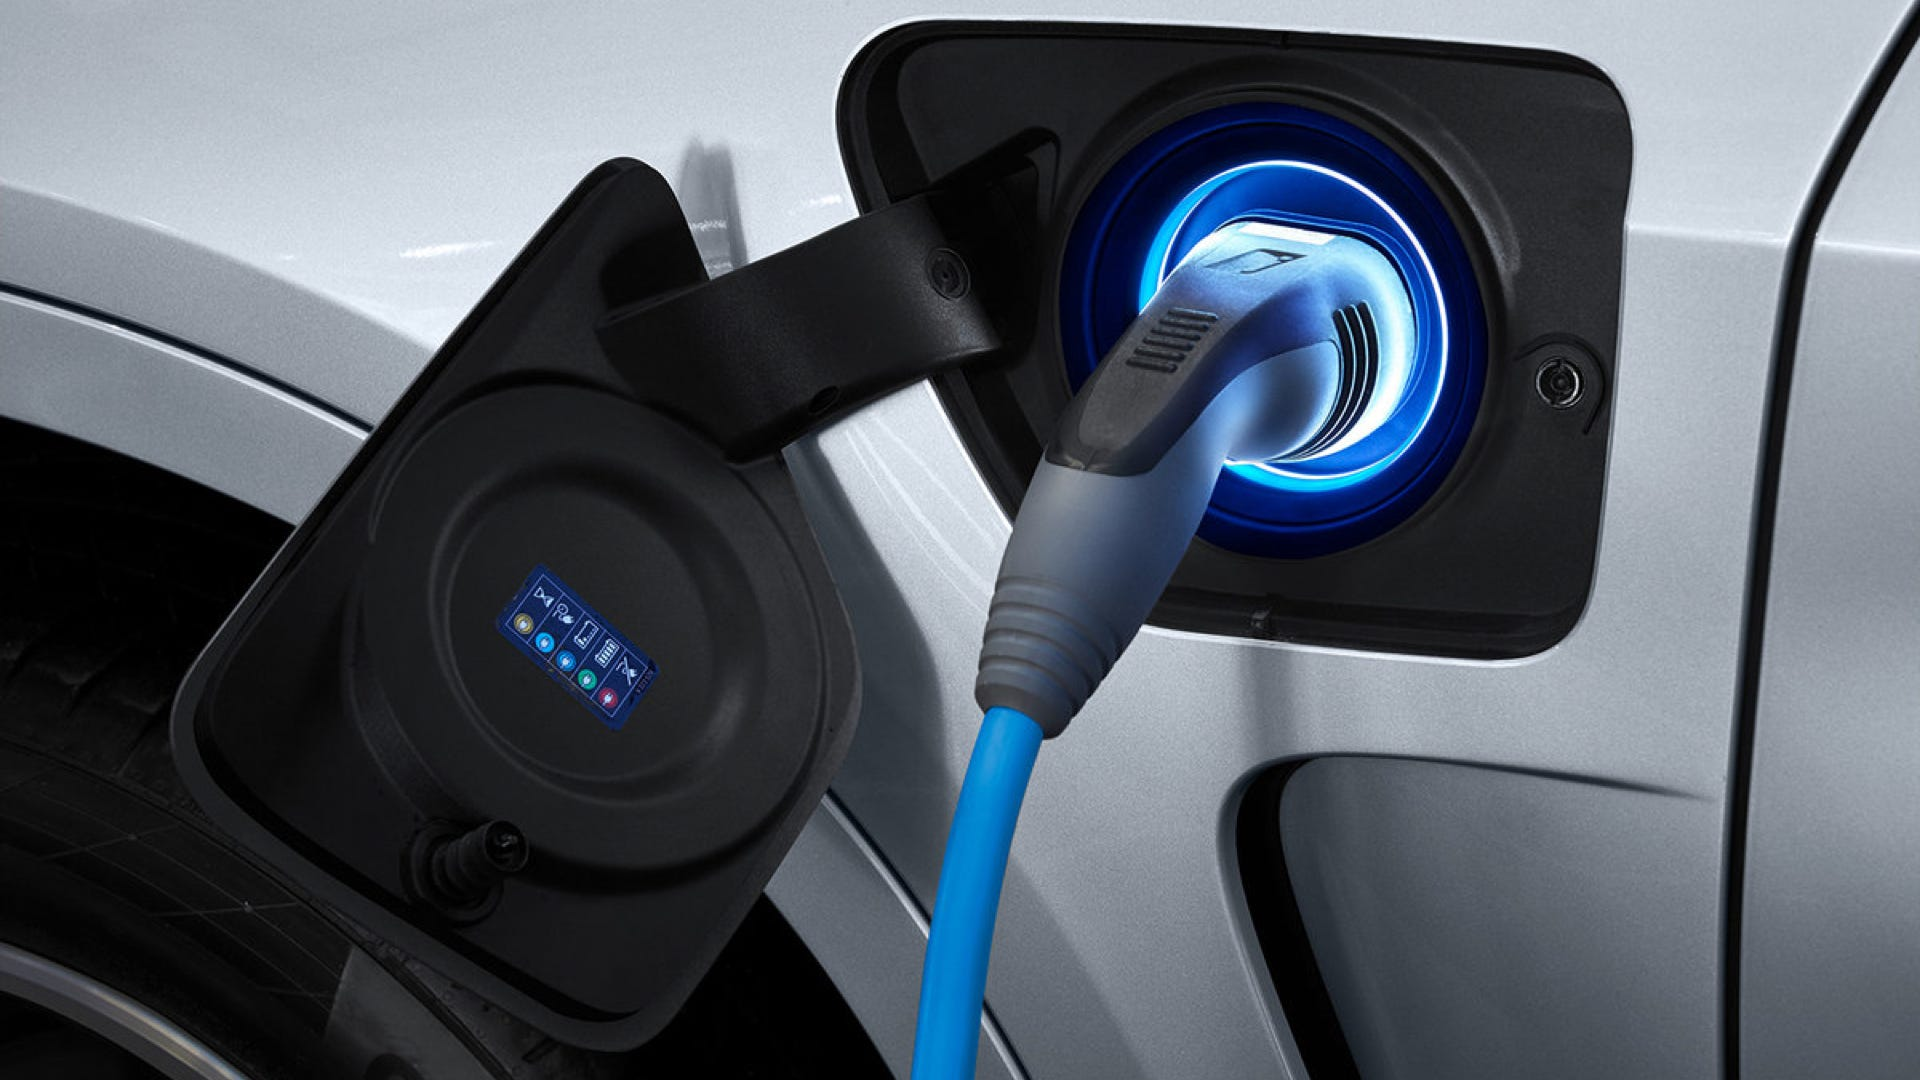 Electric Vehicles Could Wirelessly Charge While Driving According to Researchers thumbnail